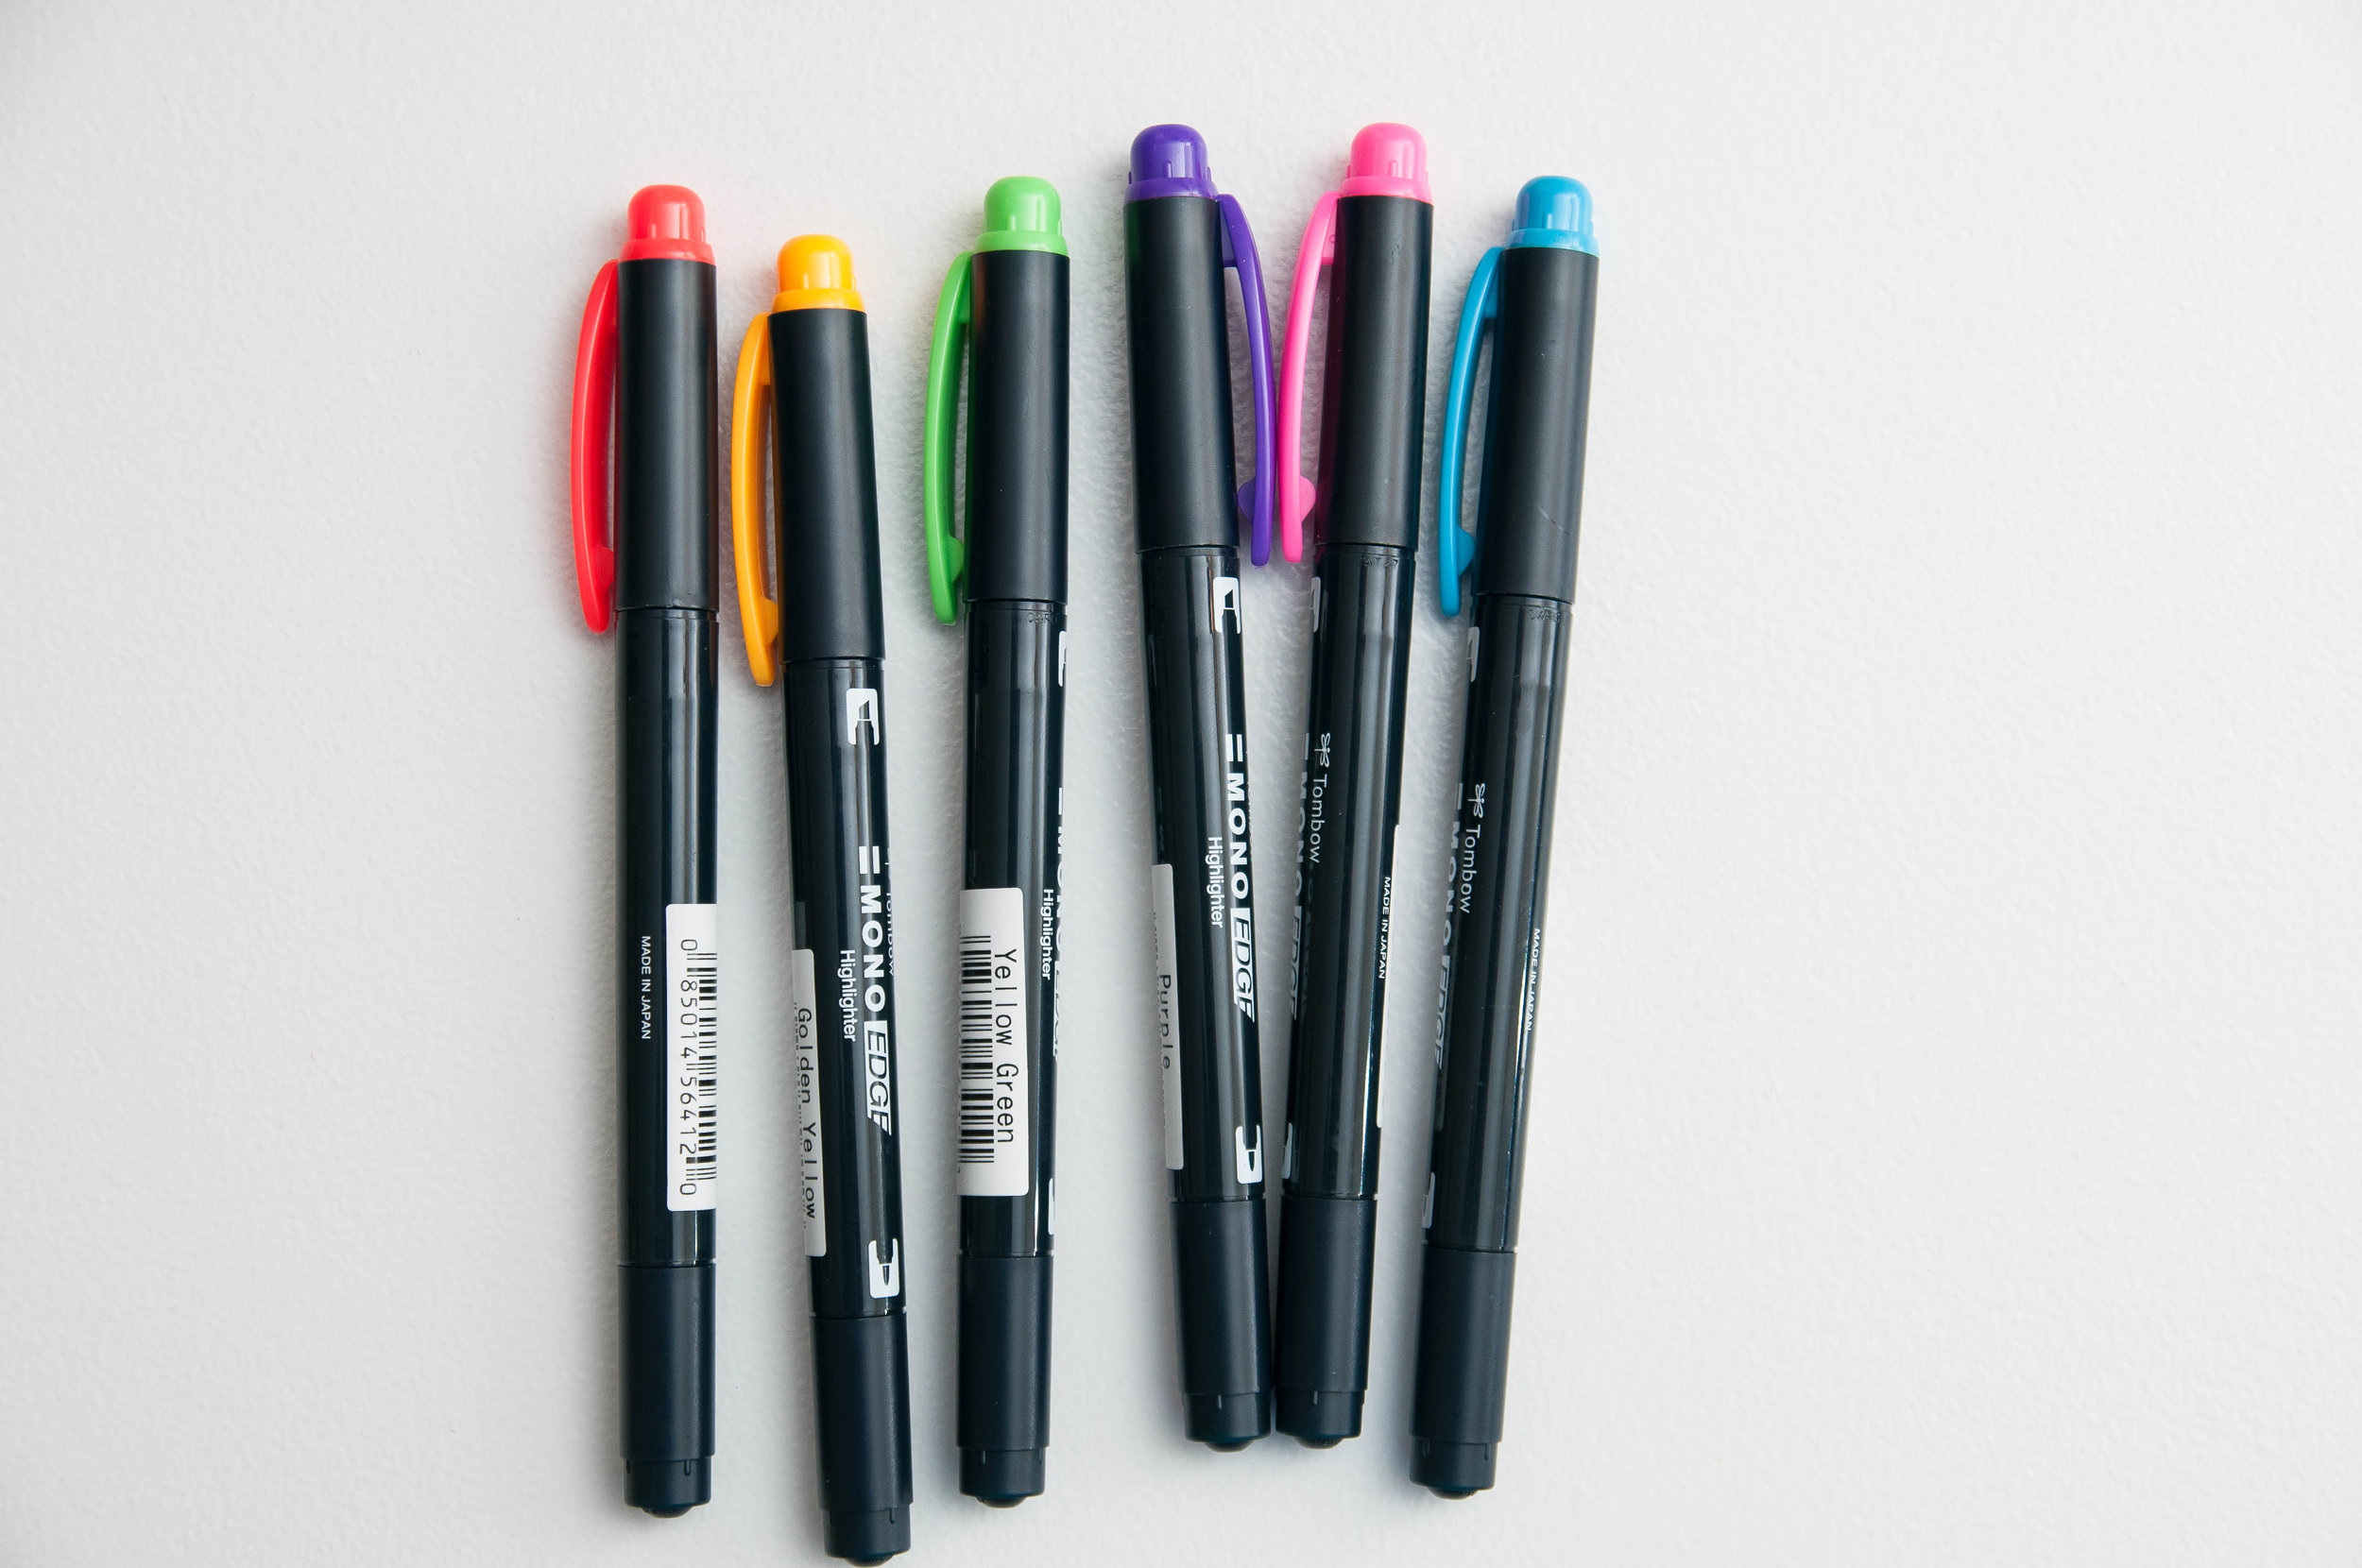 Tombow Mono Edge Dual-tip Highlighter Review